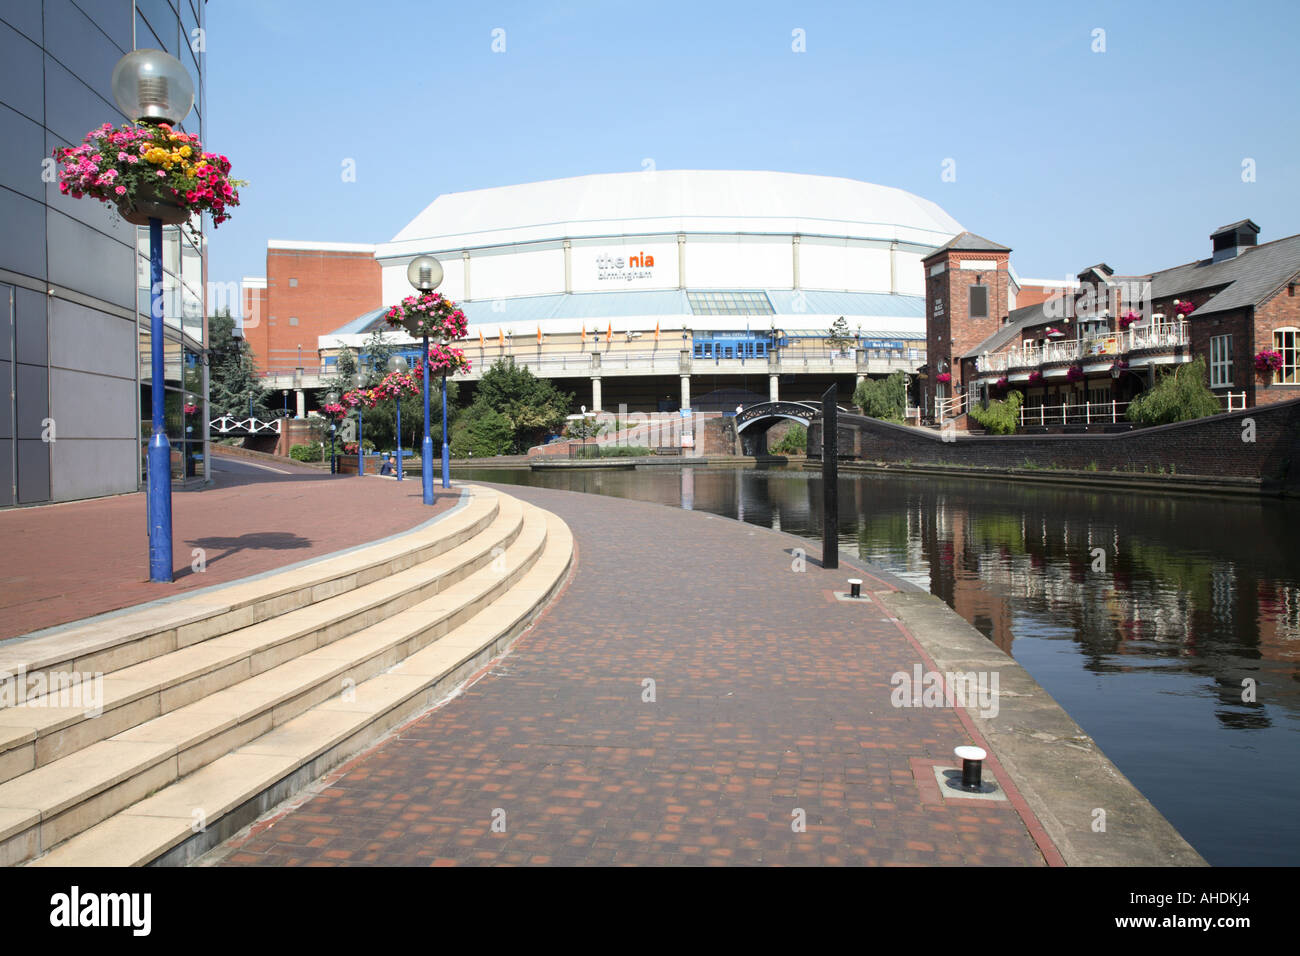 The National Indoor Arena or nia by the Sea Life Centre Birmingham city centre West Midlands central England UK july 2006 - Stock Image